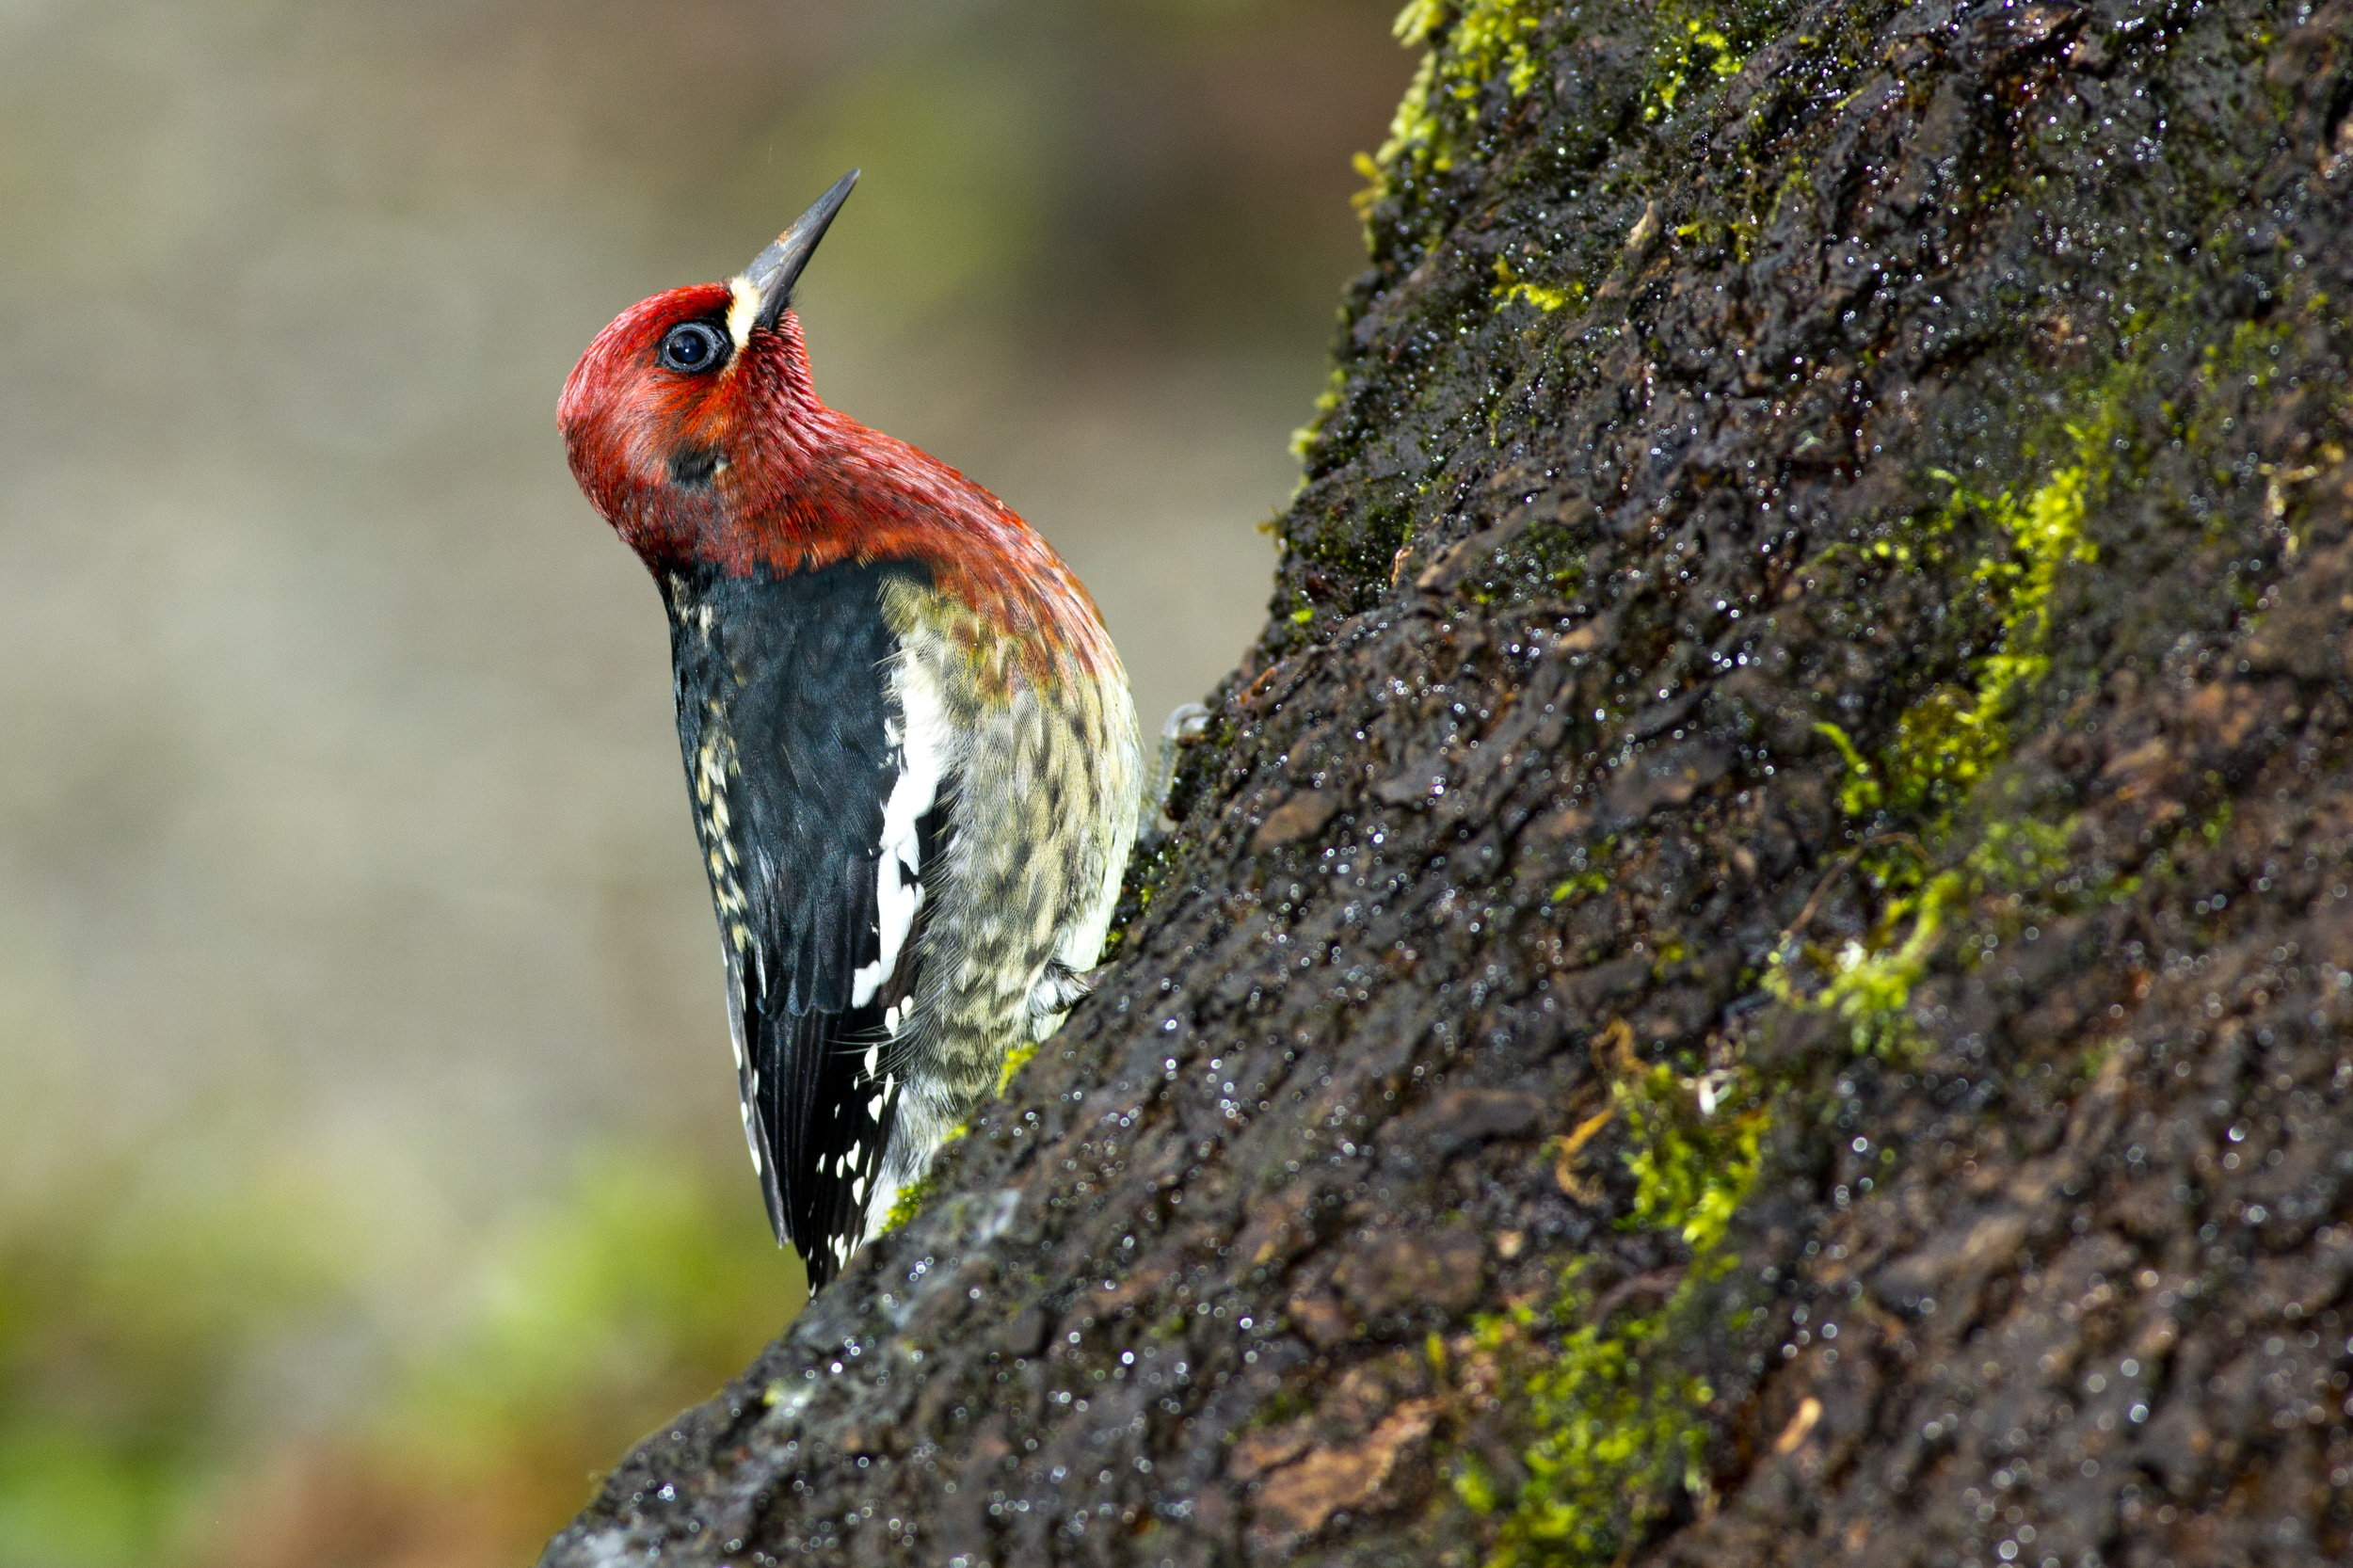 Photograph of Red-Breasted Sapsucker by Janine Schutt